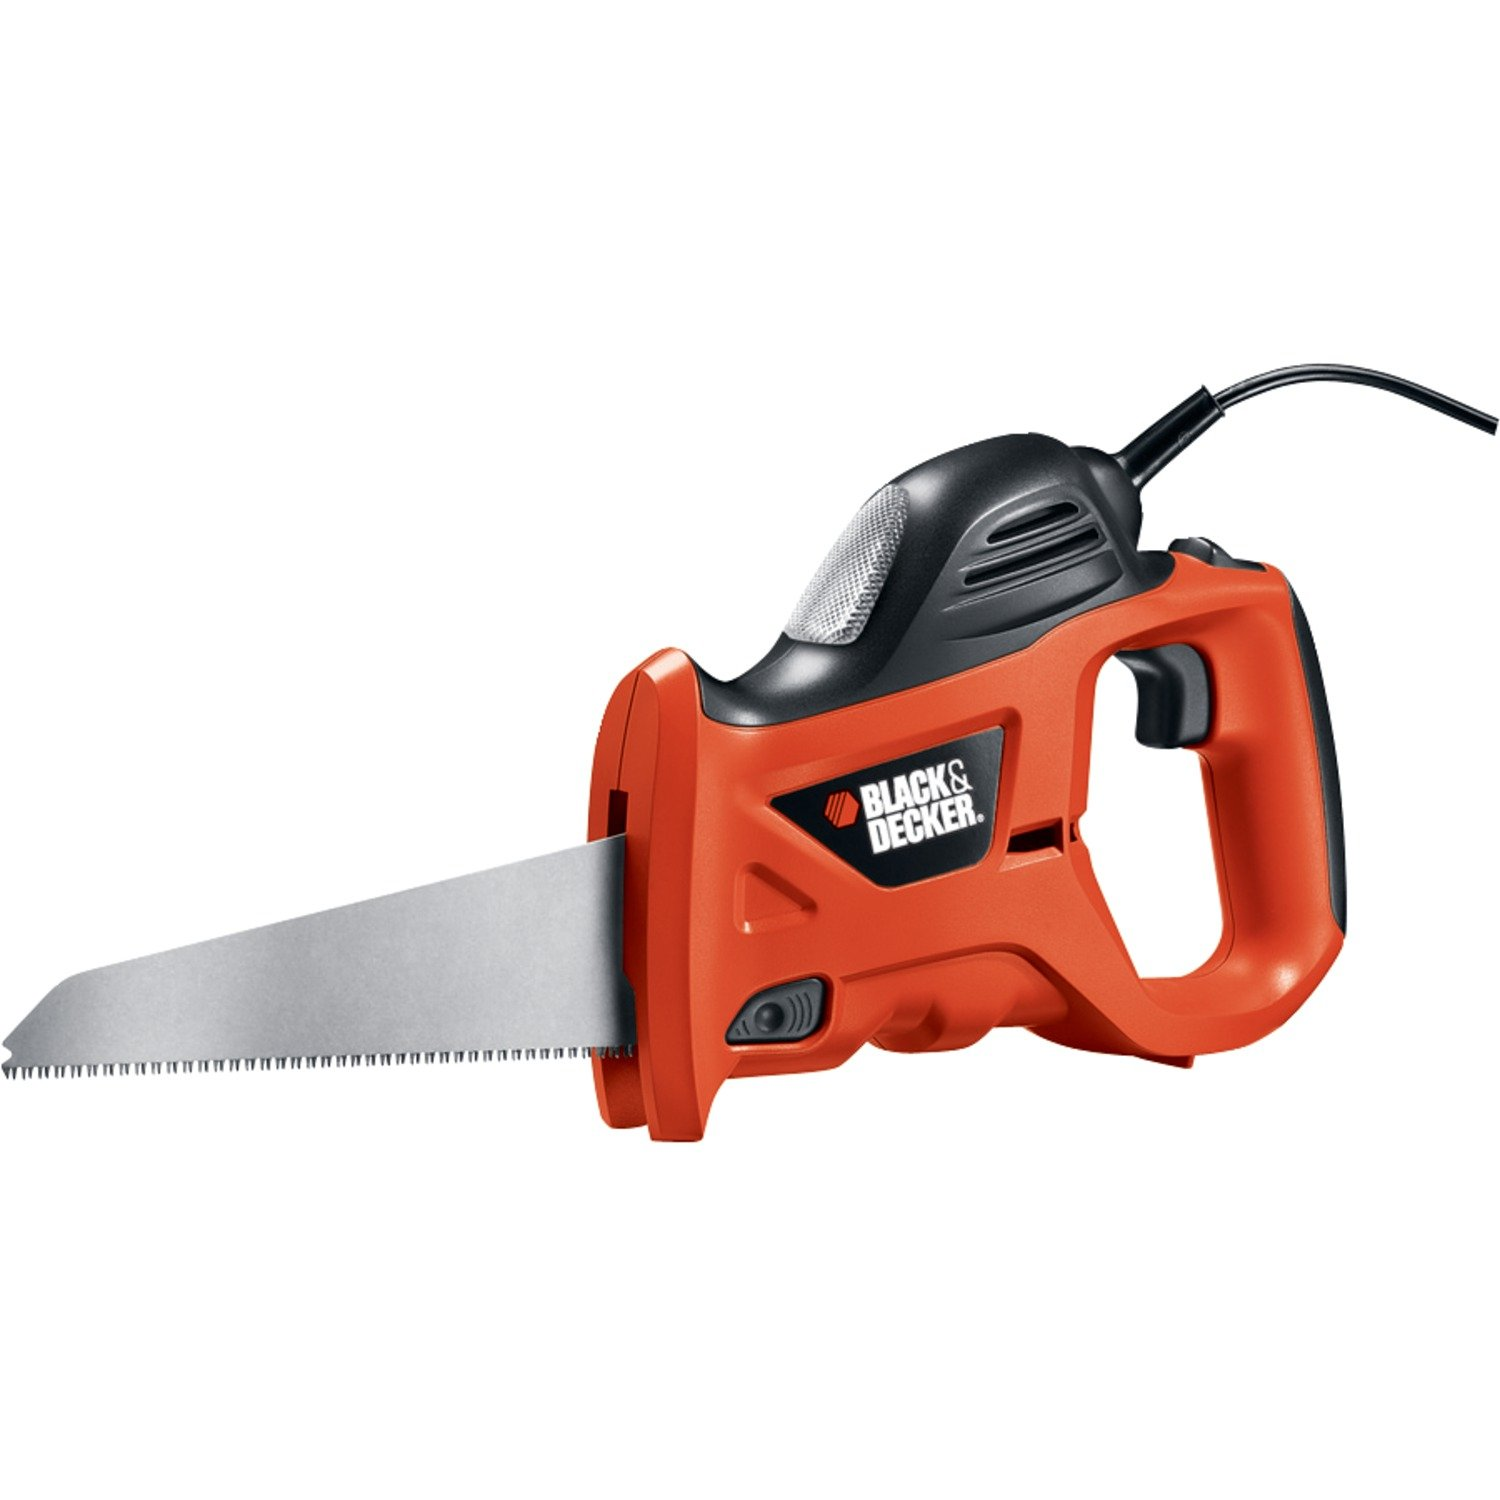 BLACK+DECKER PHS550B 3.4 Amp Powered Handsaw with Storage Bag